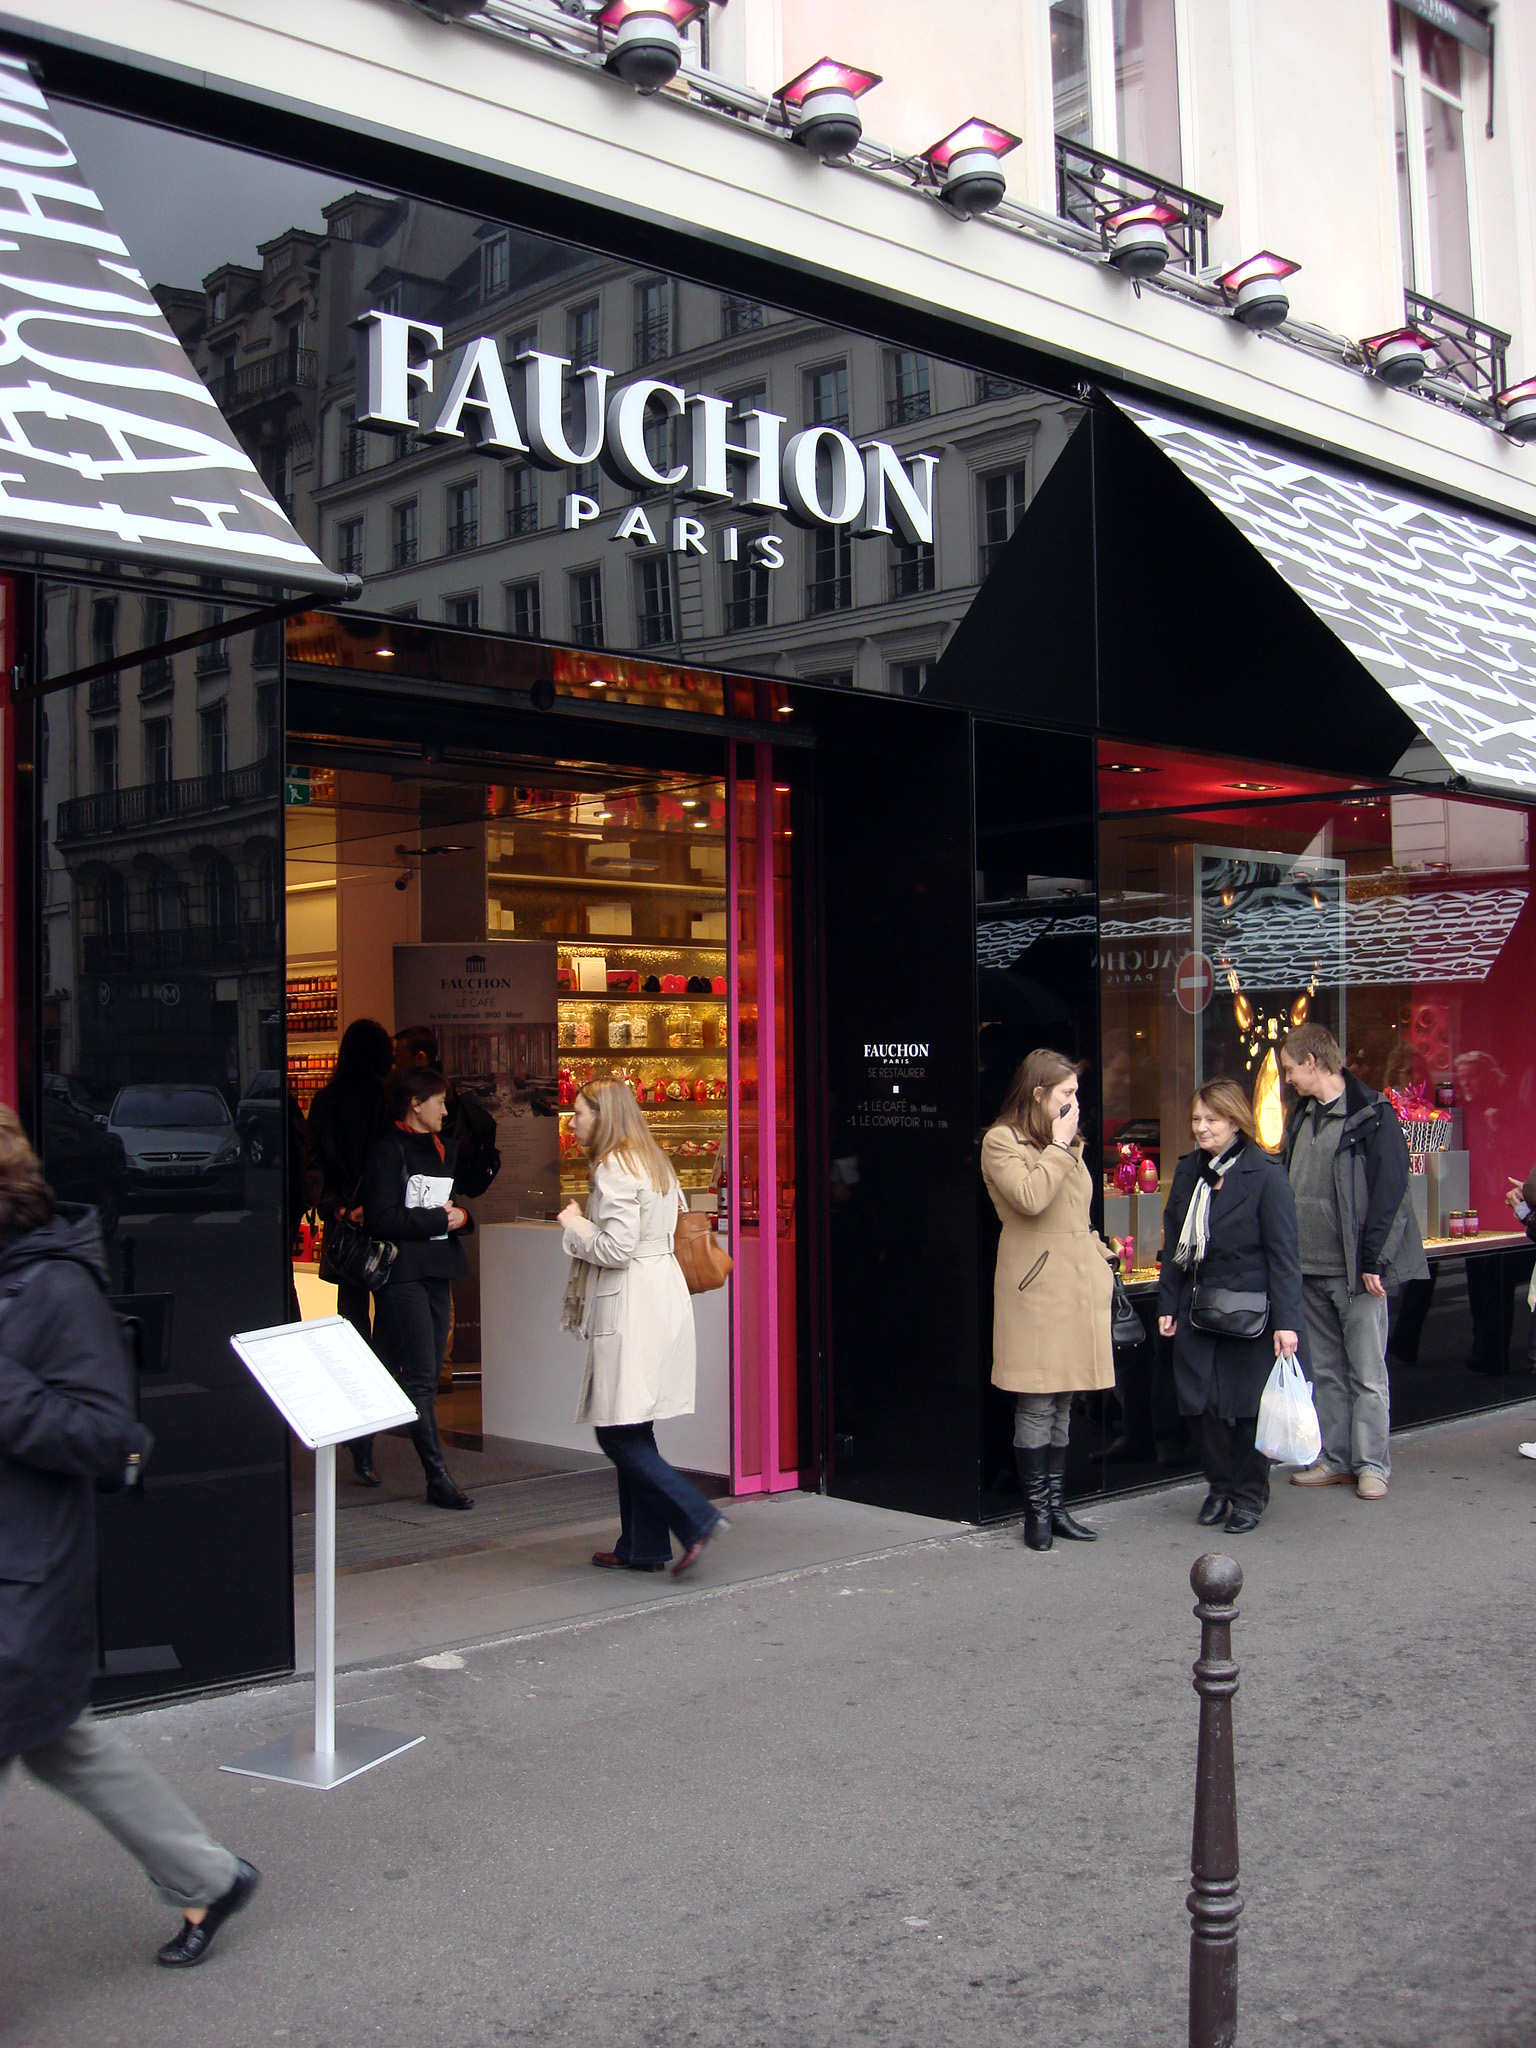 file flickr scalleja fauchon place de la madeleine paris wikimedia commons. Black Bedroom Furniture Sets. Home Design Ideas